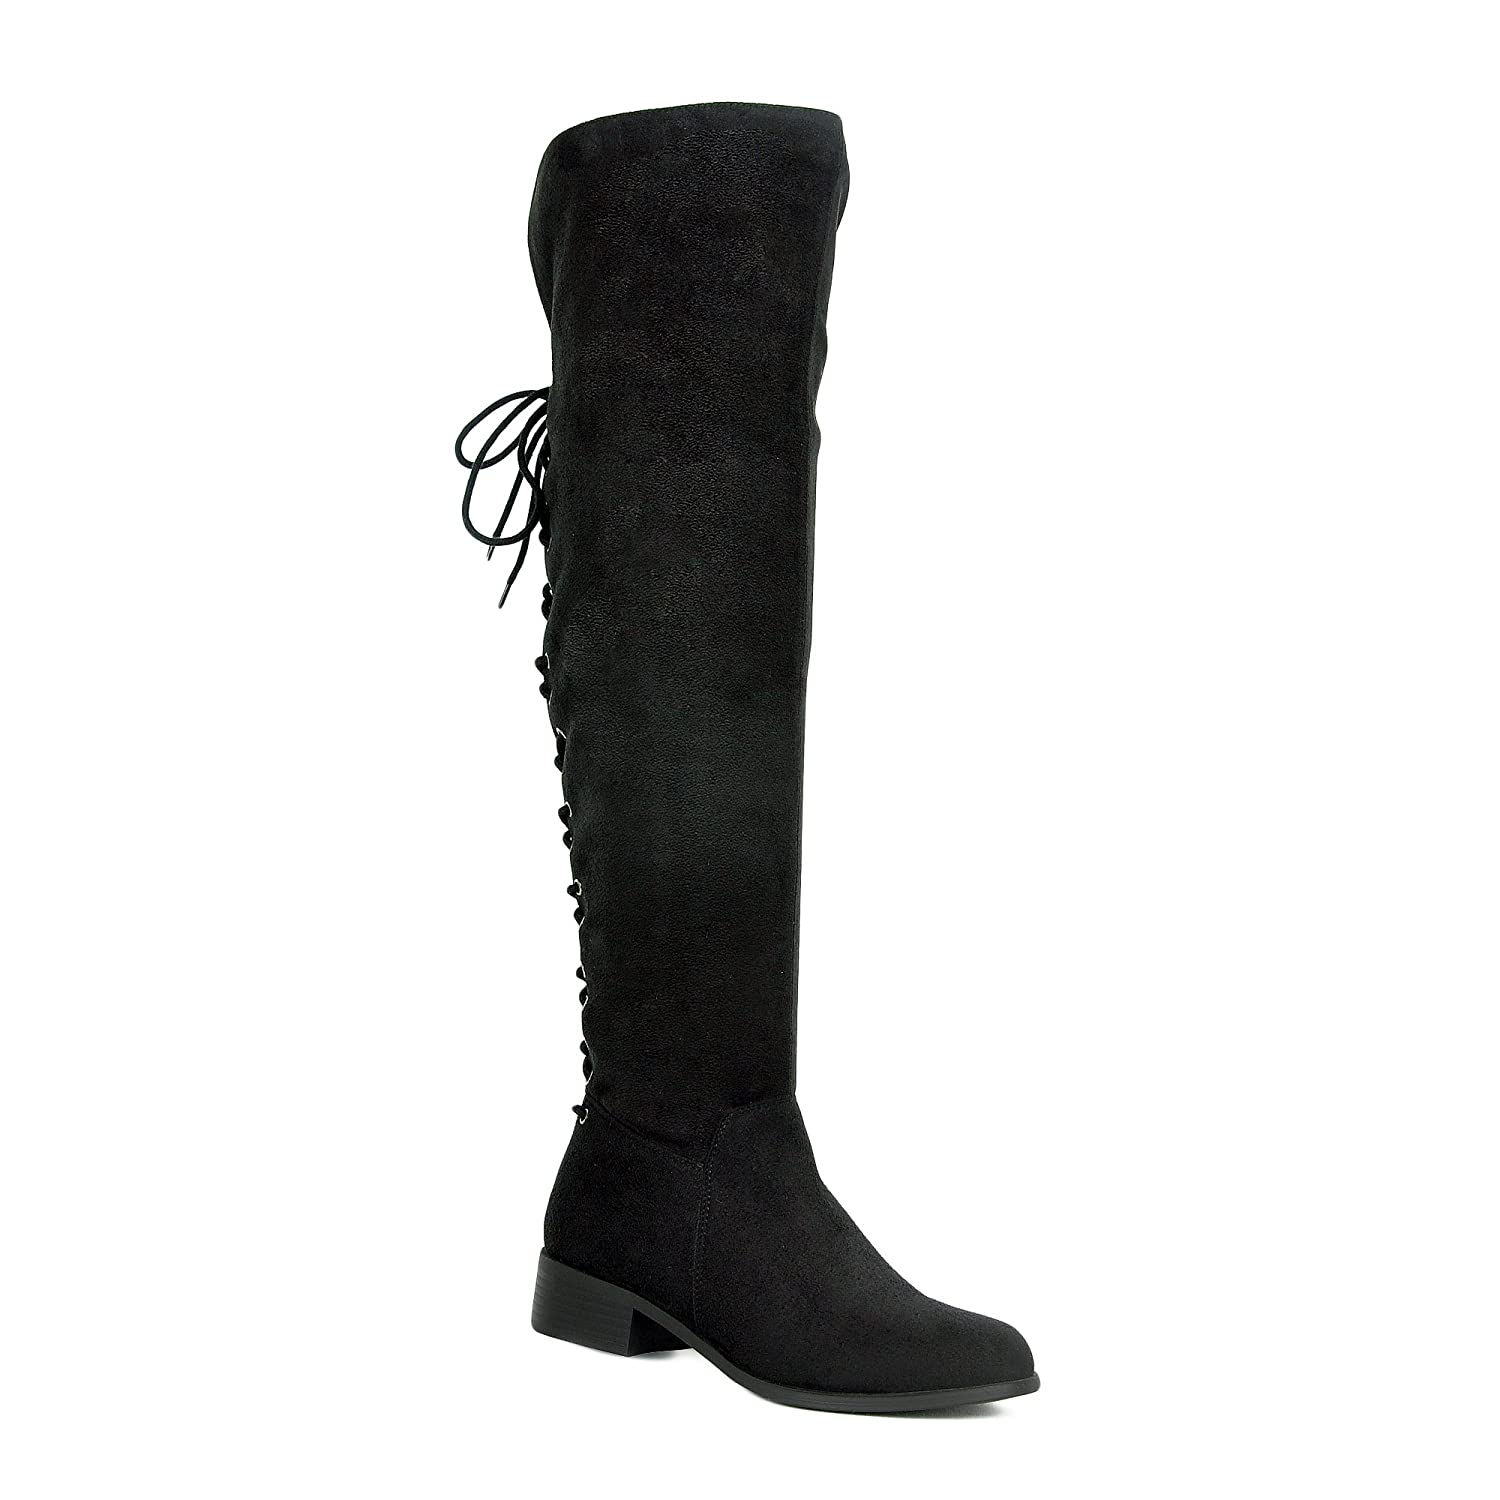 WestCoast Womens Over The Knee Boots Back Corset Lace Up Fold Cuff Back Tie Flat Knee High Dress Riding Boots Miles